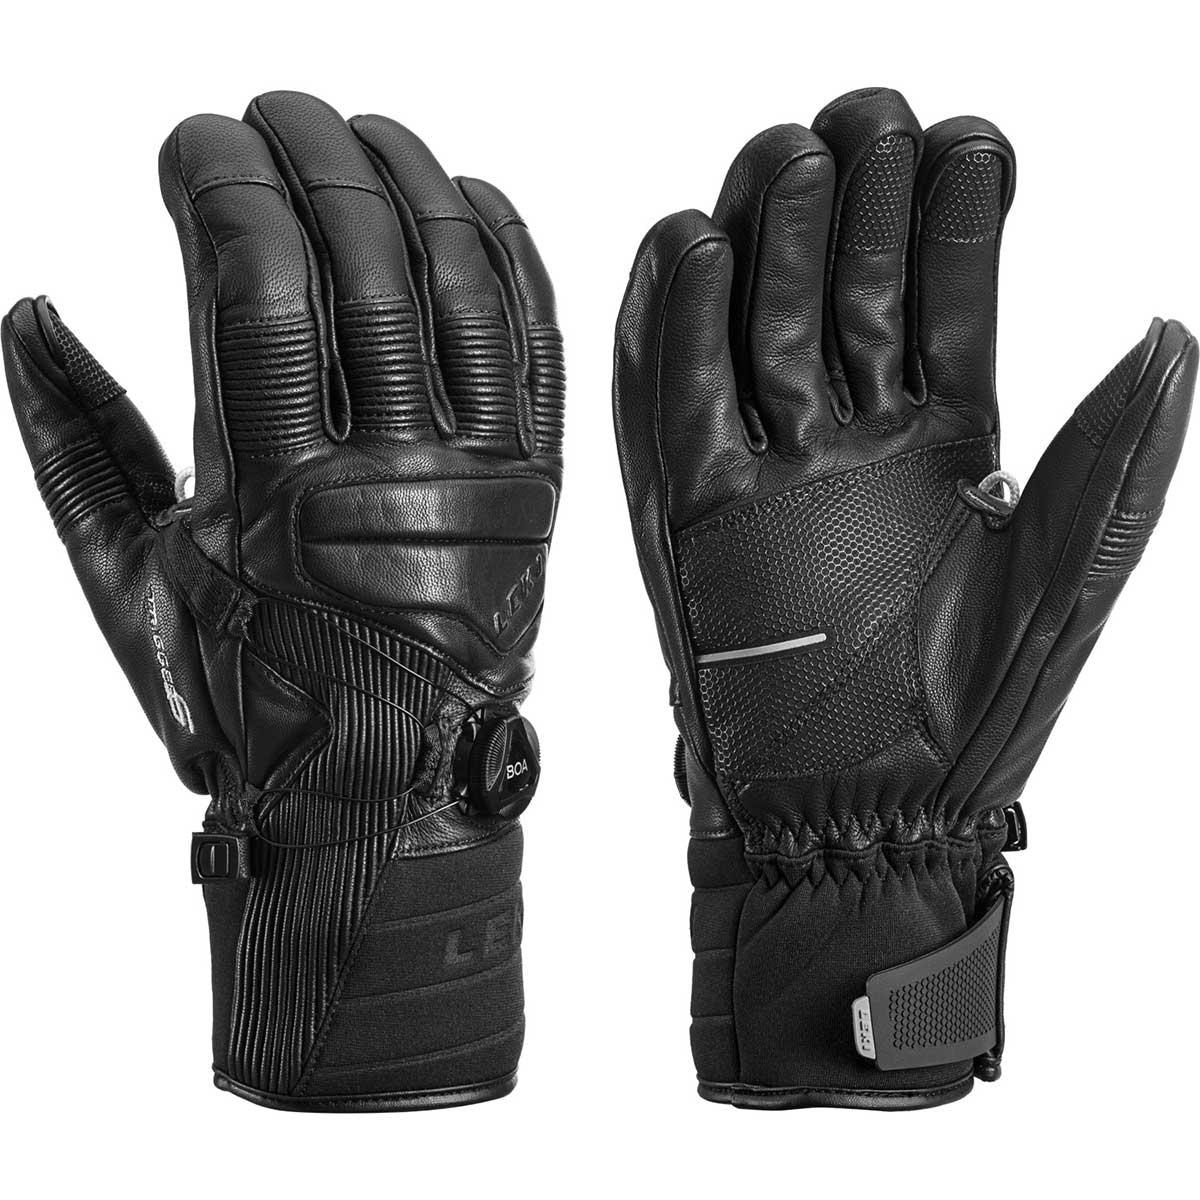 Leki Progressive Tube LTR S BOA MF Touch Gloves in black